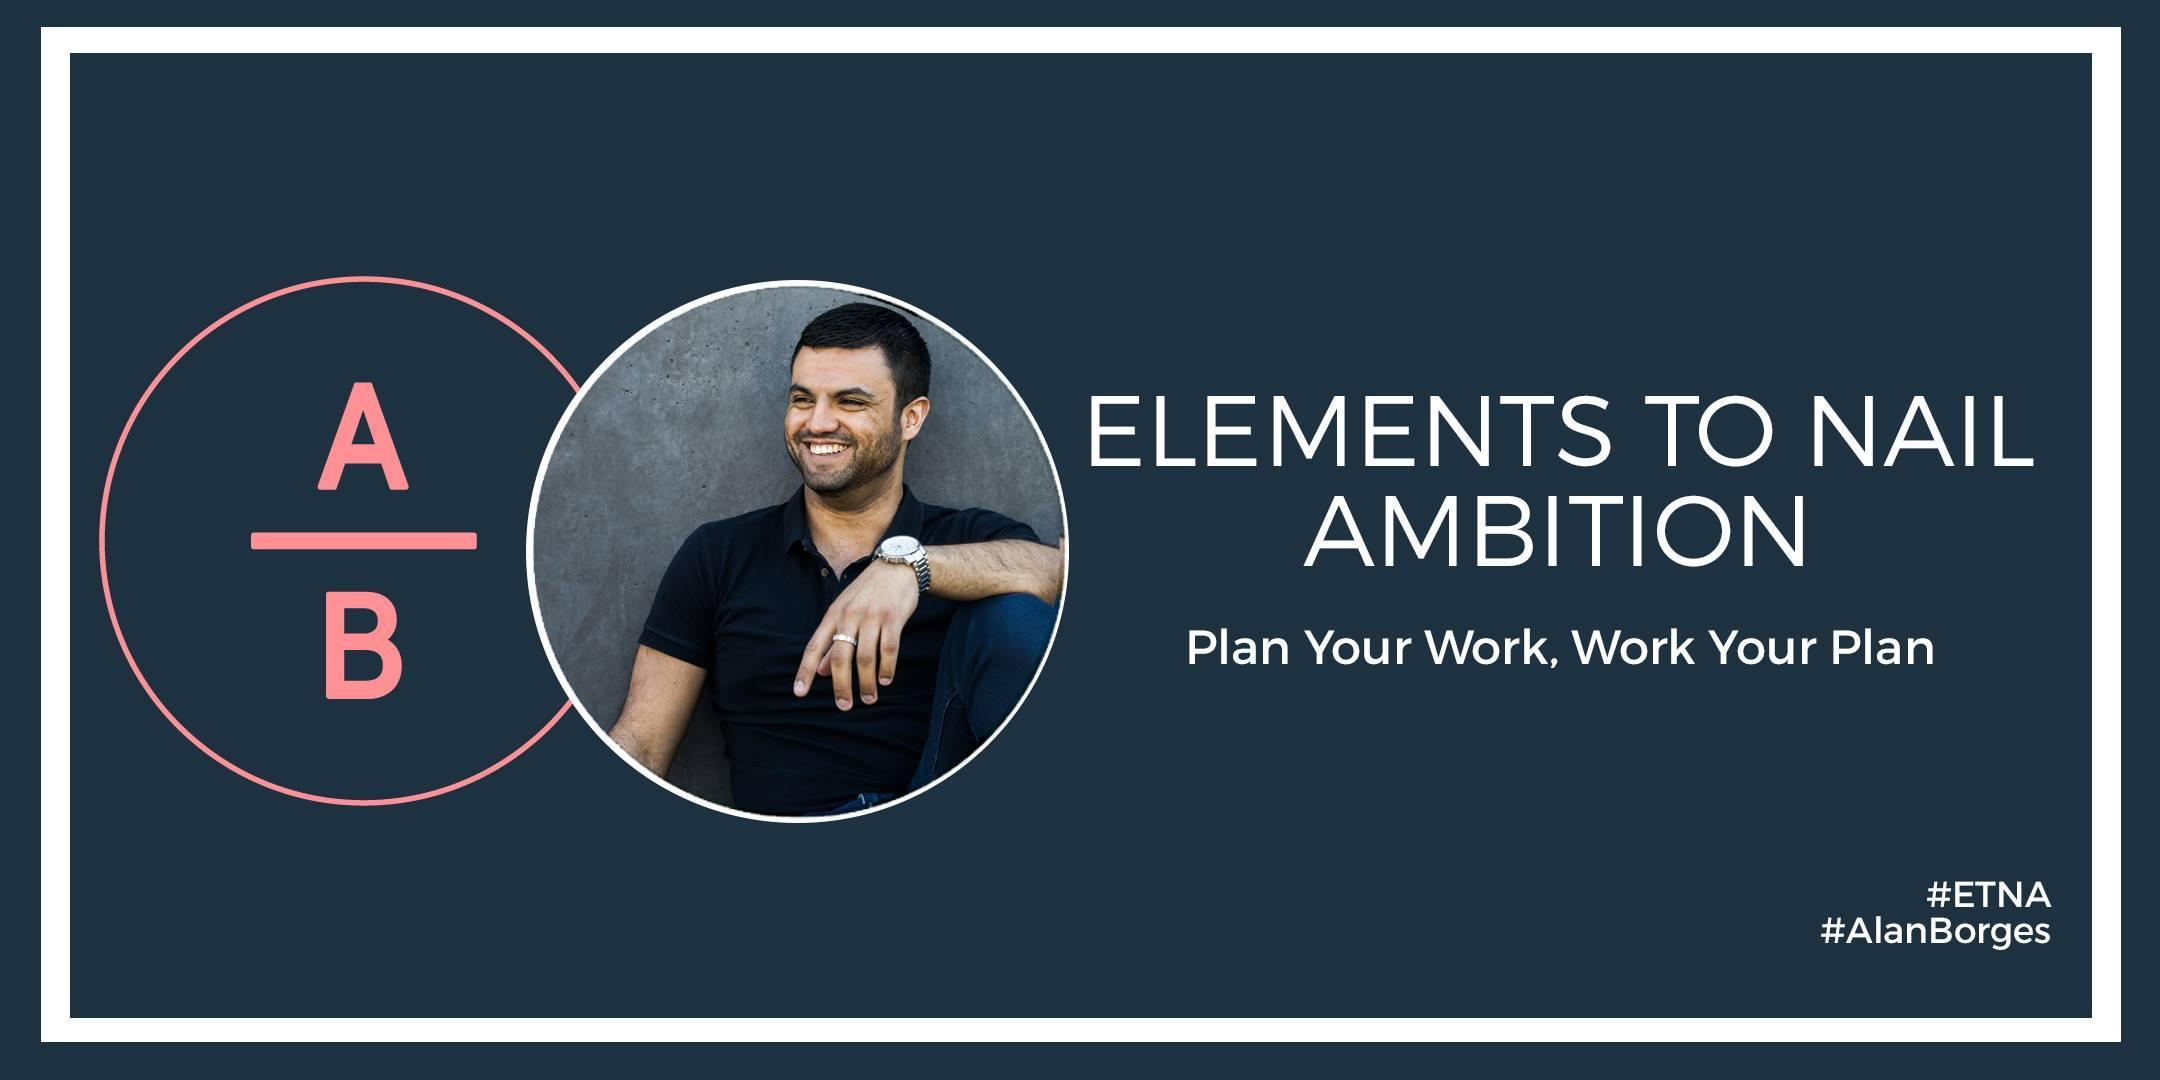 Elements To Nail Ambition